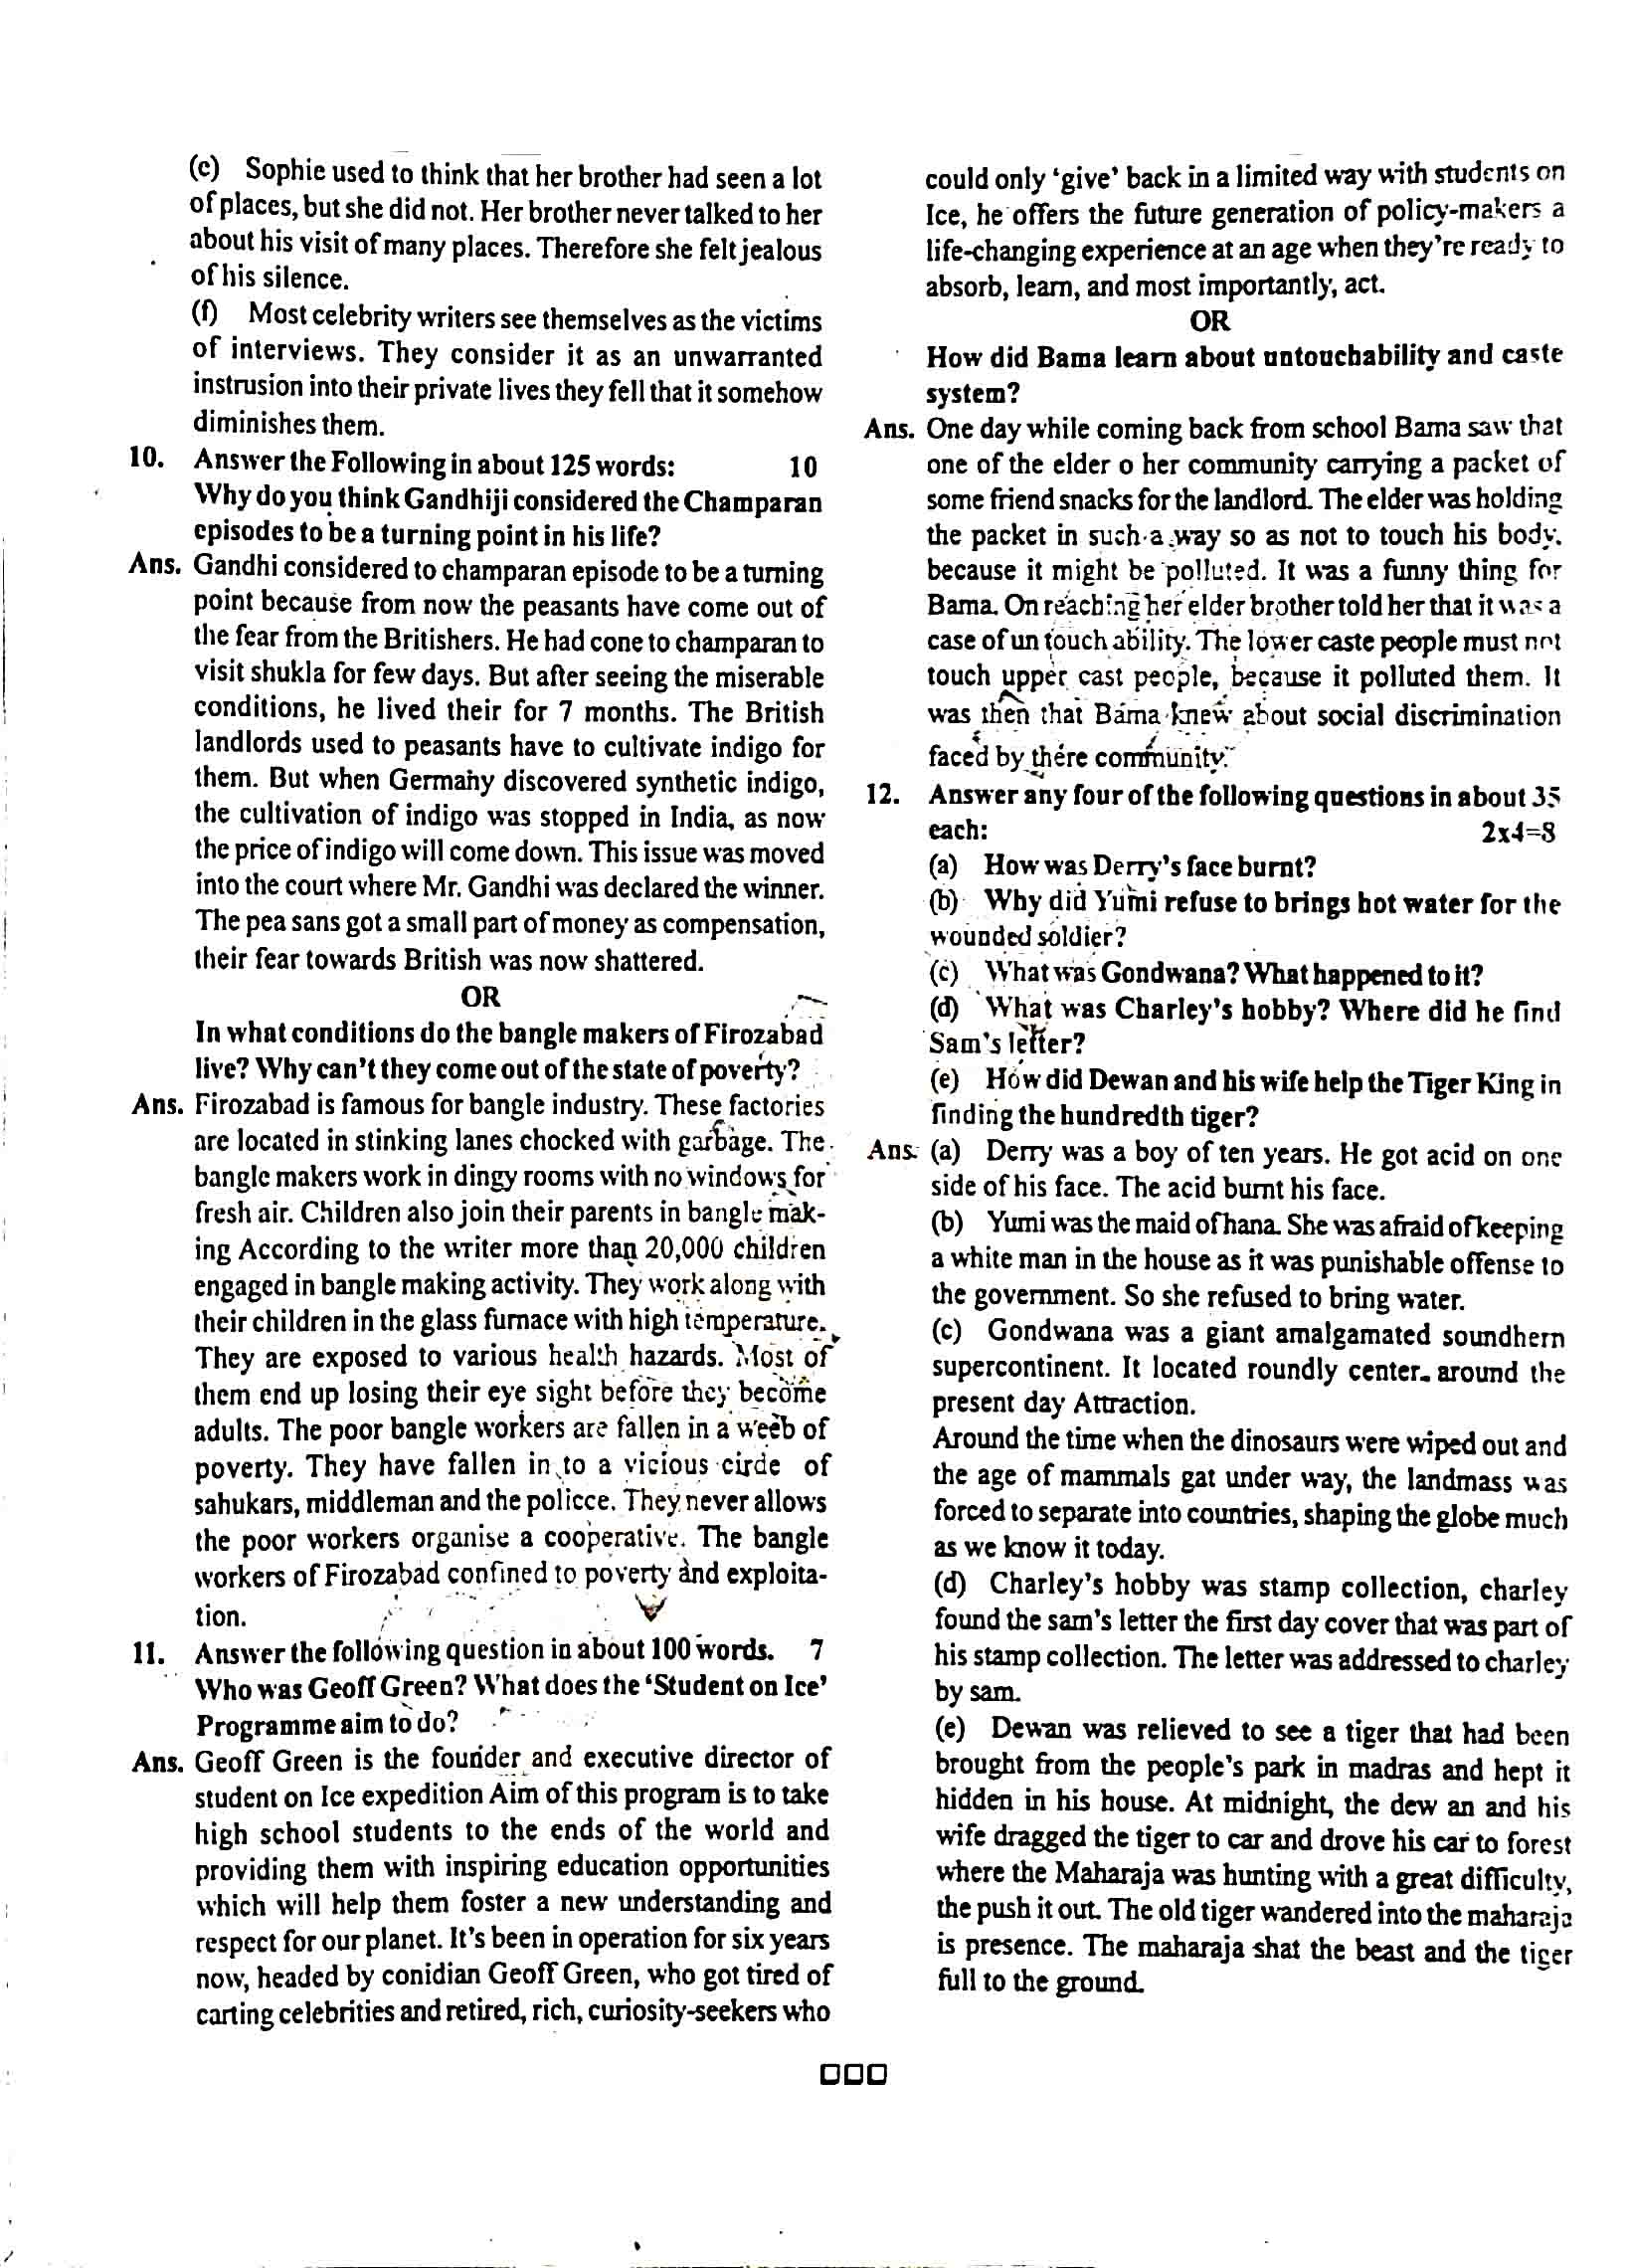 JAC Class 12 english-core 2020 Question Paper 05